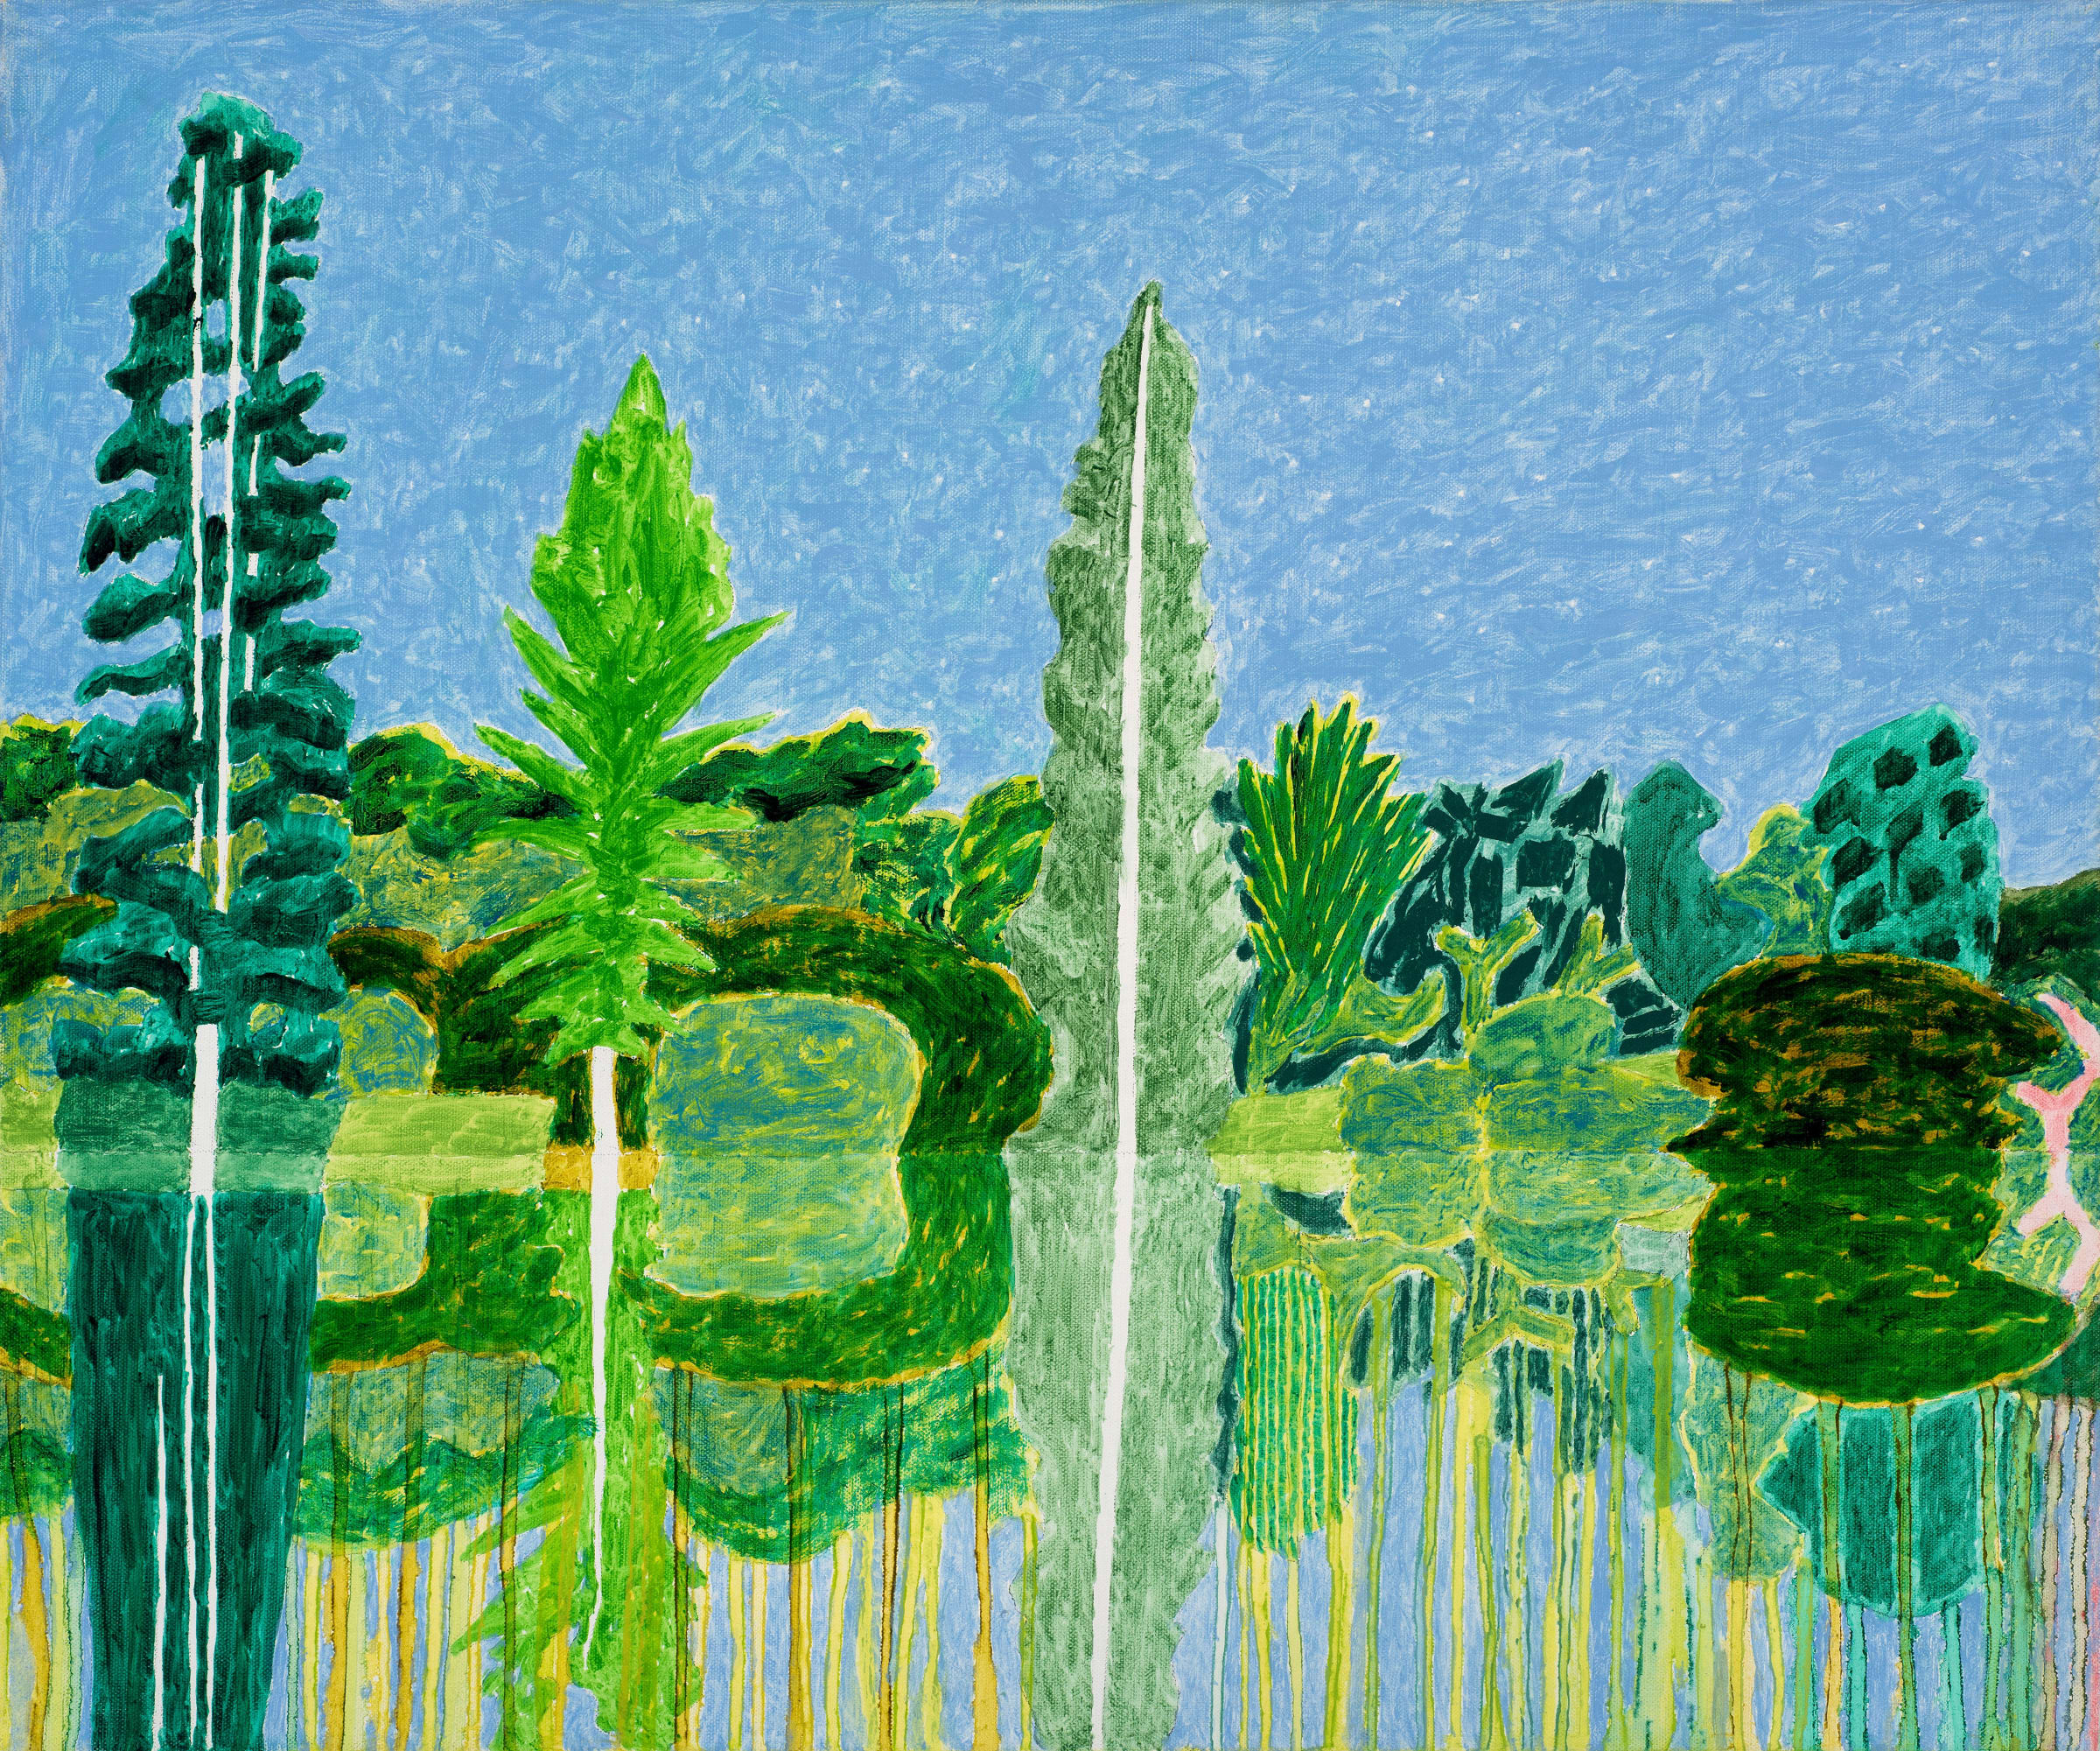 """<span class=""""link fancybox-details-link""""><a href=""""/exhibitions/12/works/image281/"""">View Detail Page</a></span><p><strong>Adrian Berg RA (1929-2011)</strong></p><p>Second Lake, Sheffield Park Garden, Sussex Weald, 24th & 27th August</p><p>2002, oil on canvas, 63.5 x 76.2cm</p>"""